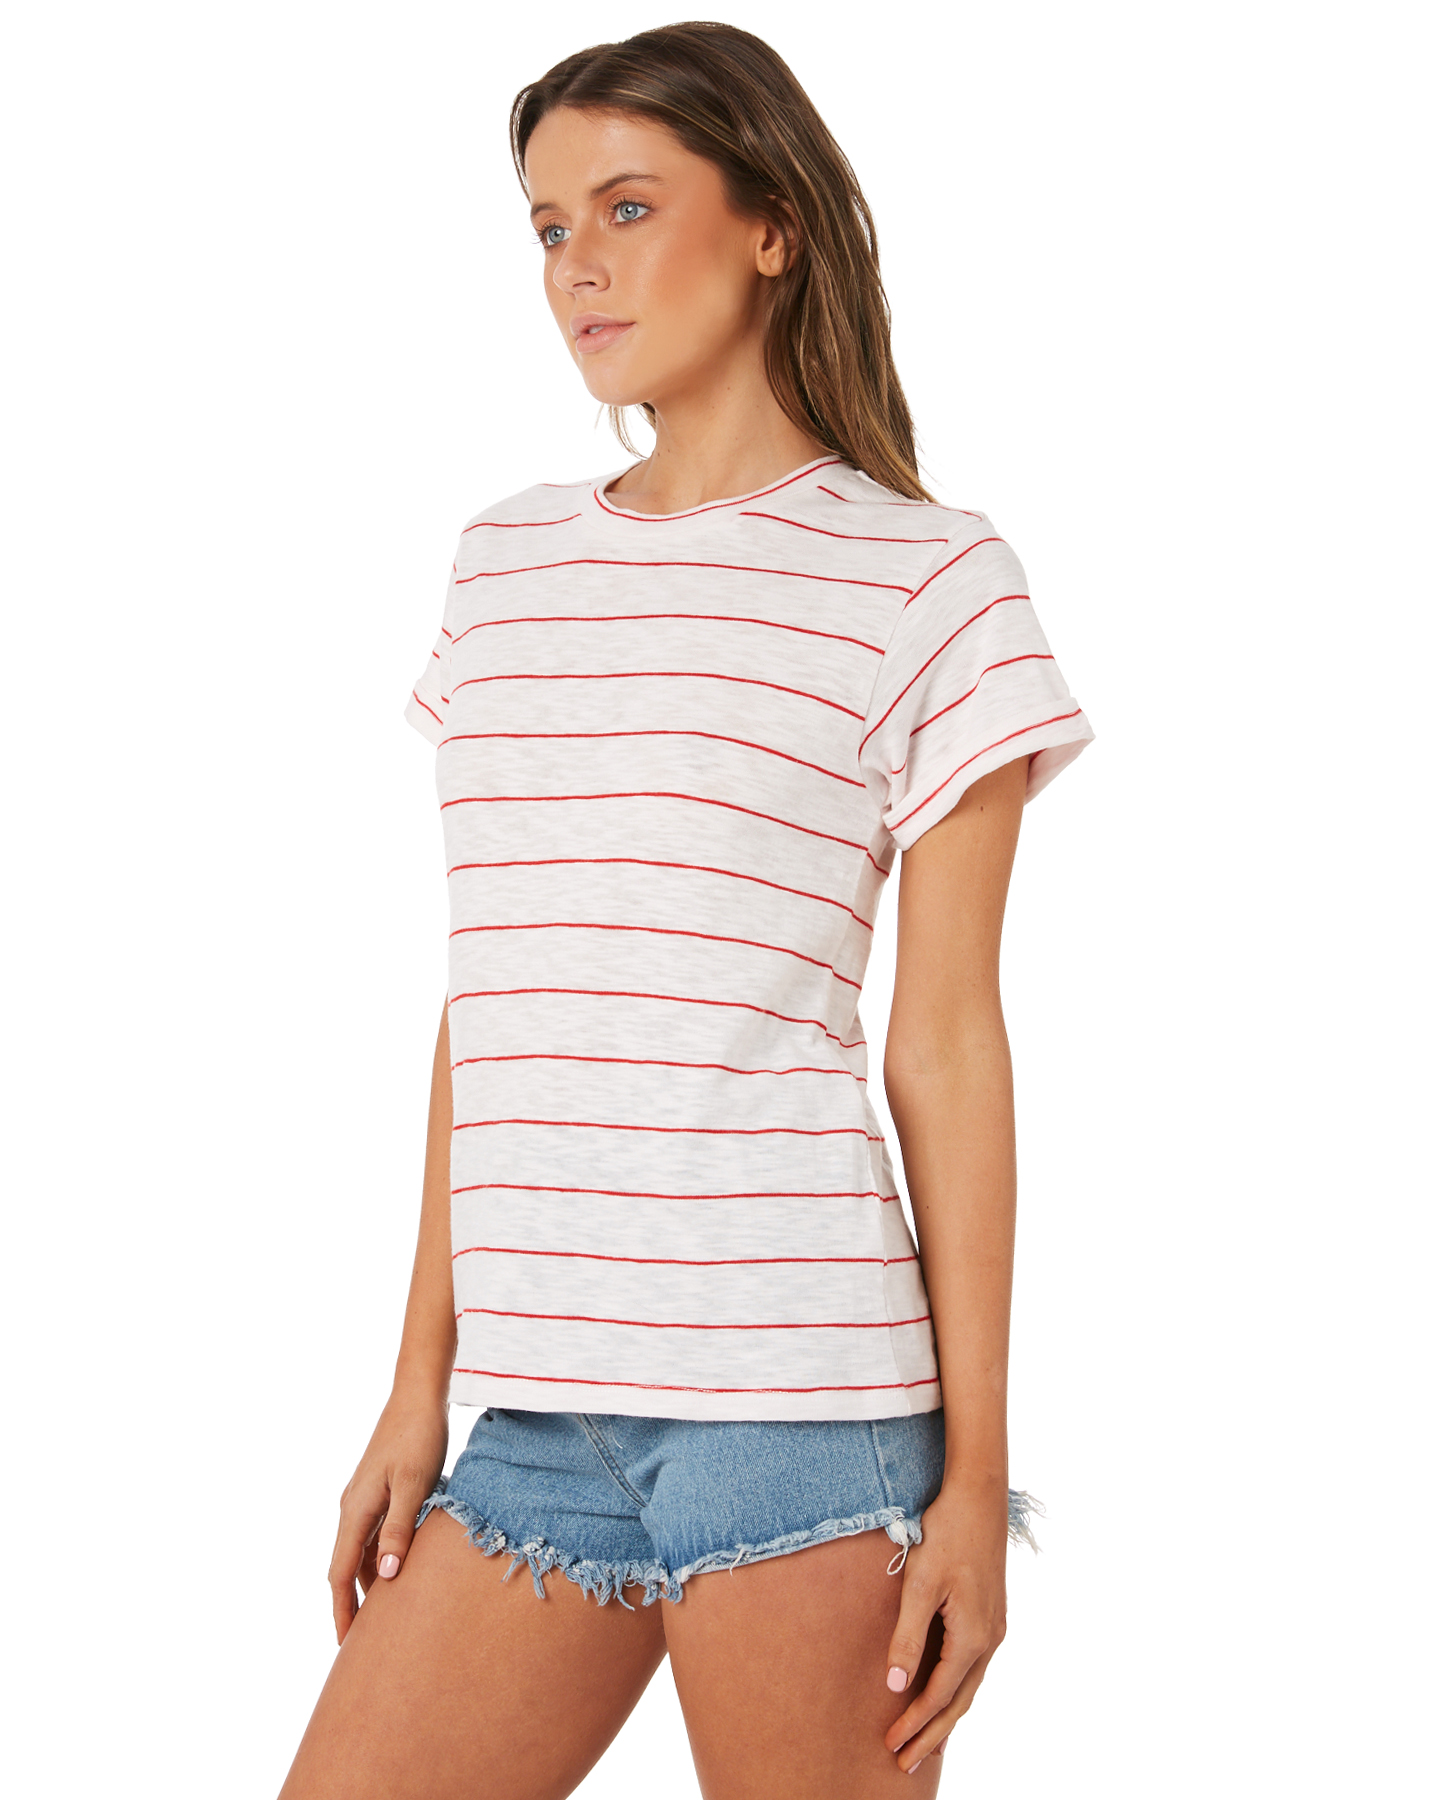 New-Swell-Women-039-s-Ginger-Boyfriend-Tee-Crew-Neck-Short-Sleeve-Cotton-Red thumbnail 12